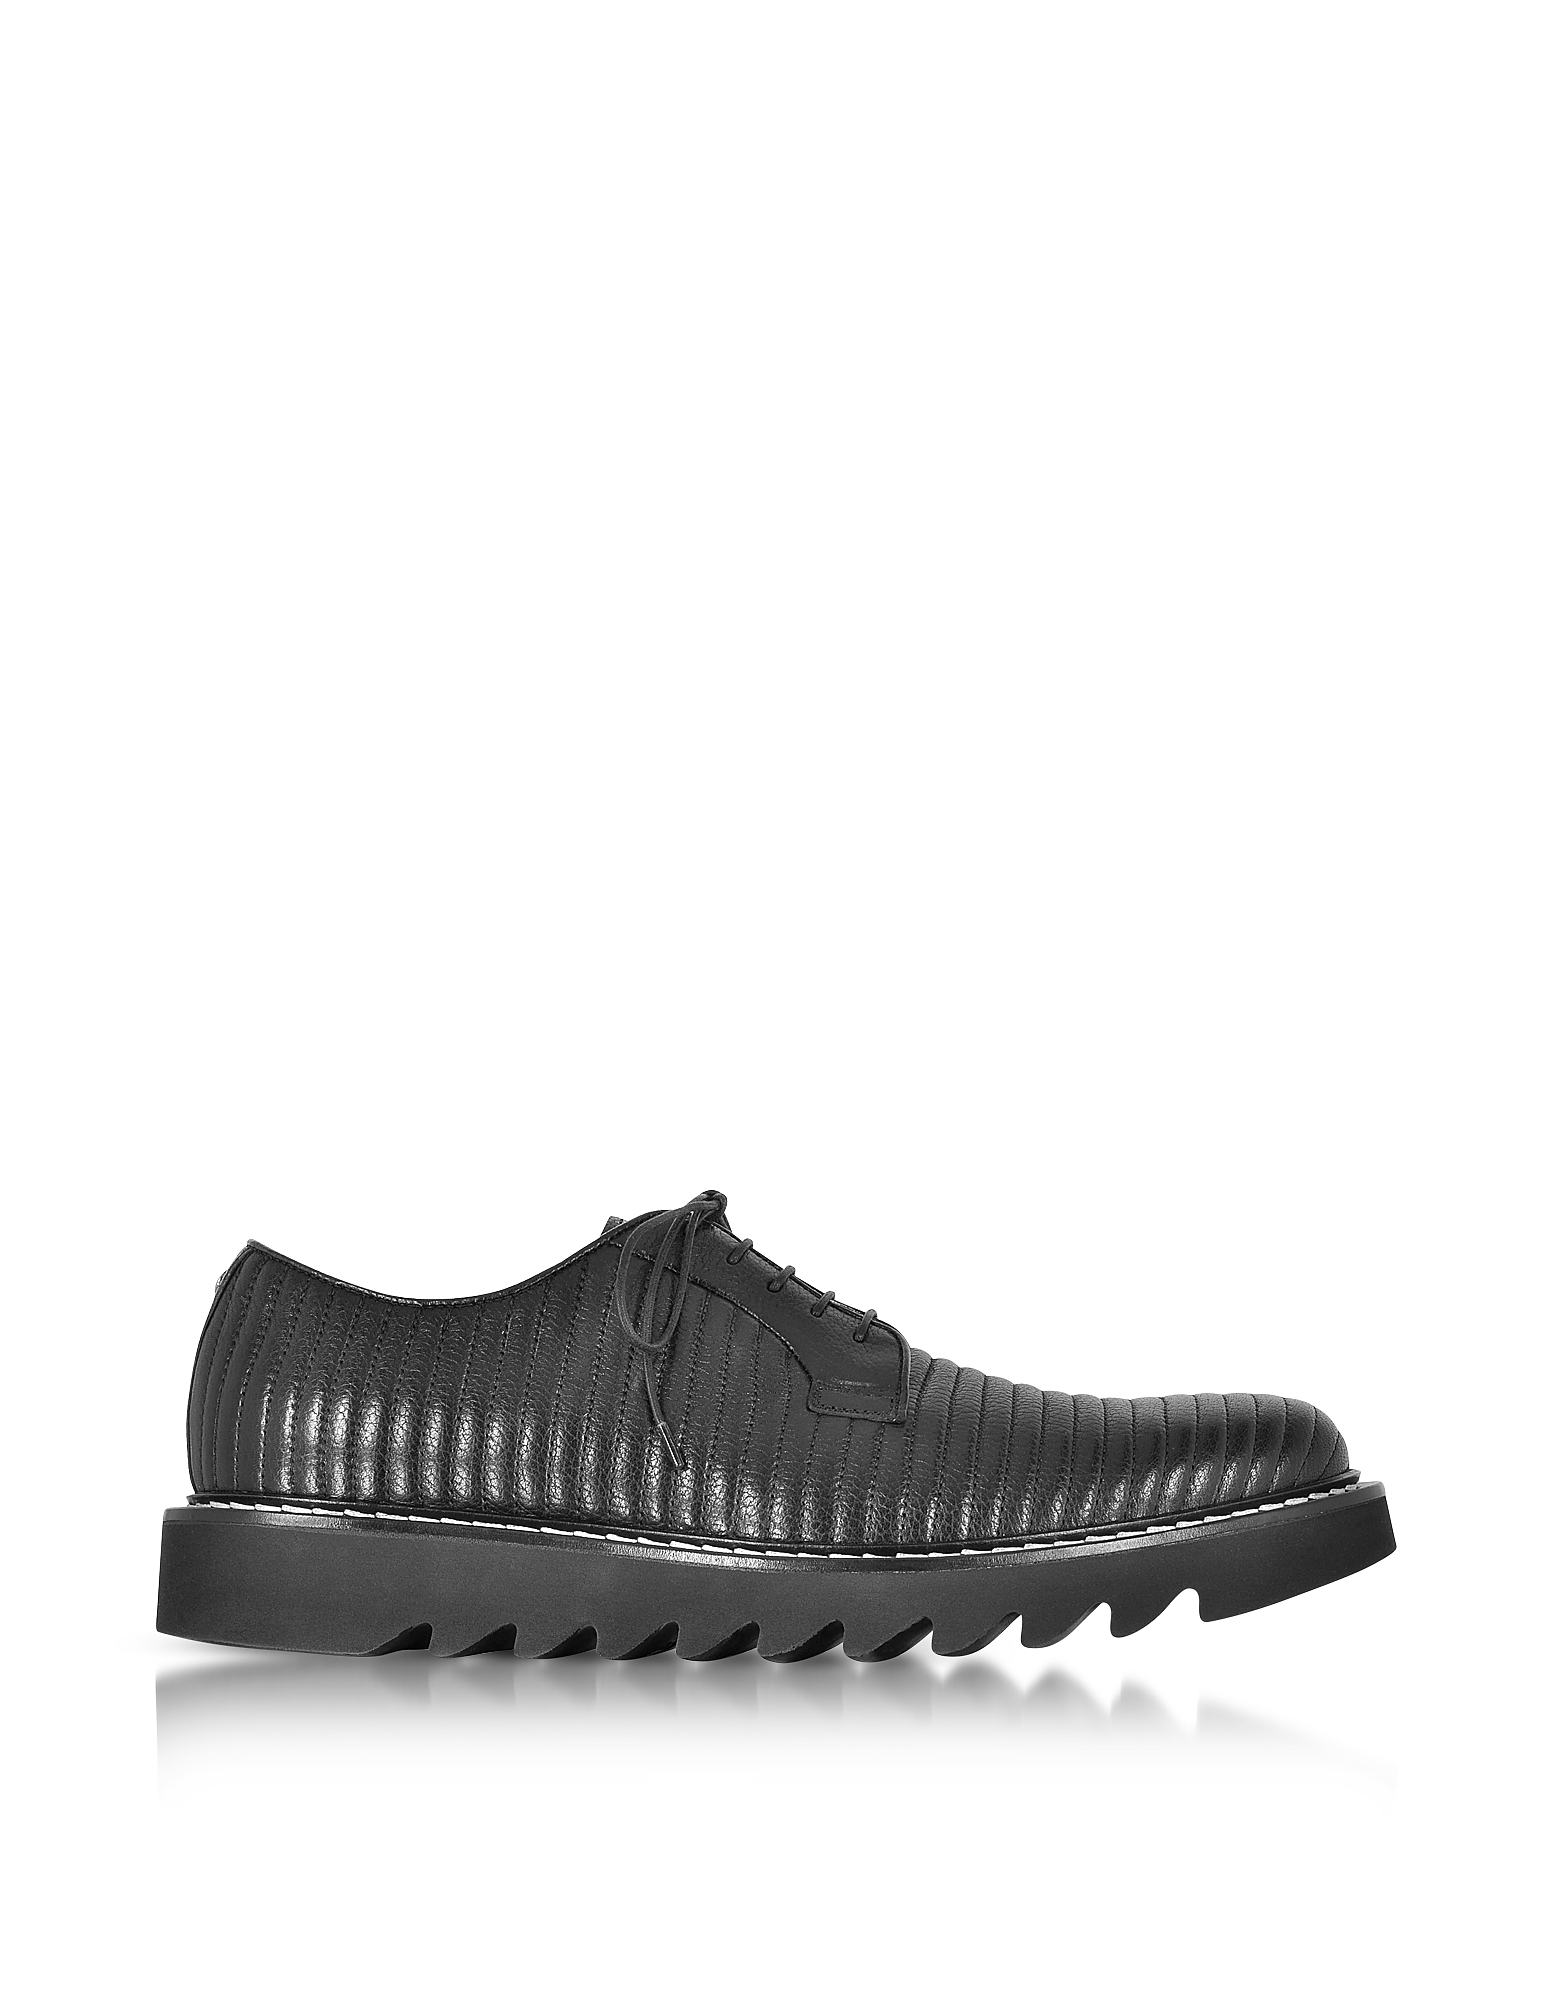 Cesare Paciotti Shoes, Black Quilted Leather Lace up Shoes